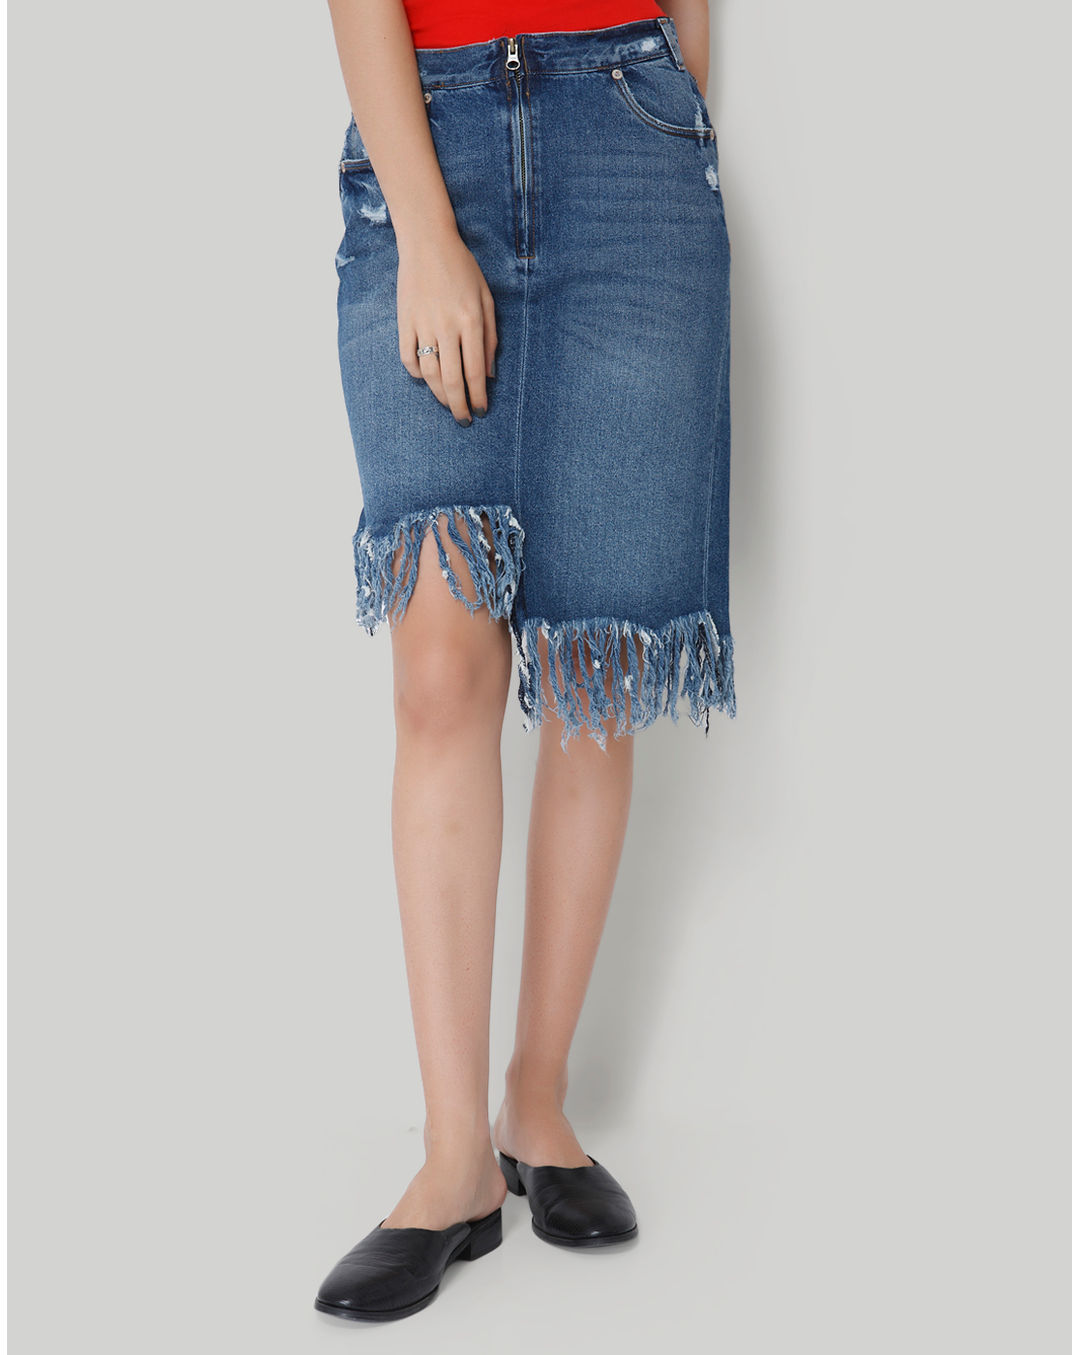 classcic cheaper sale latest style of 2019 Buy Only Blue Fringe Detail Denim Skirt Online | Only